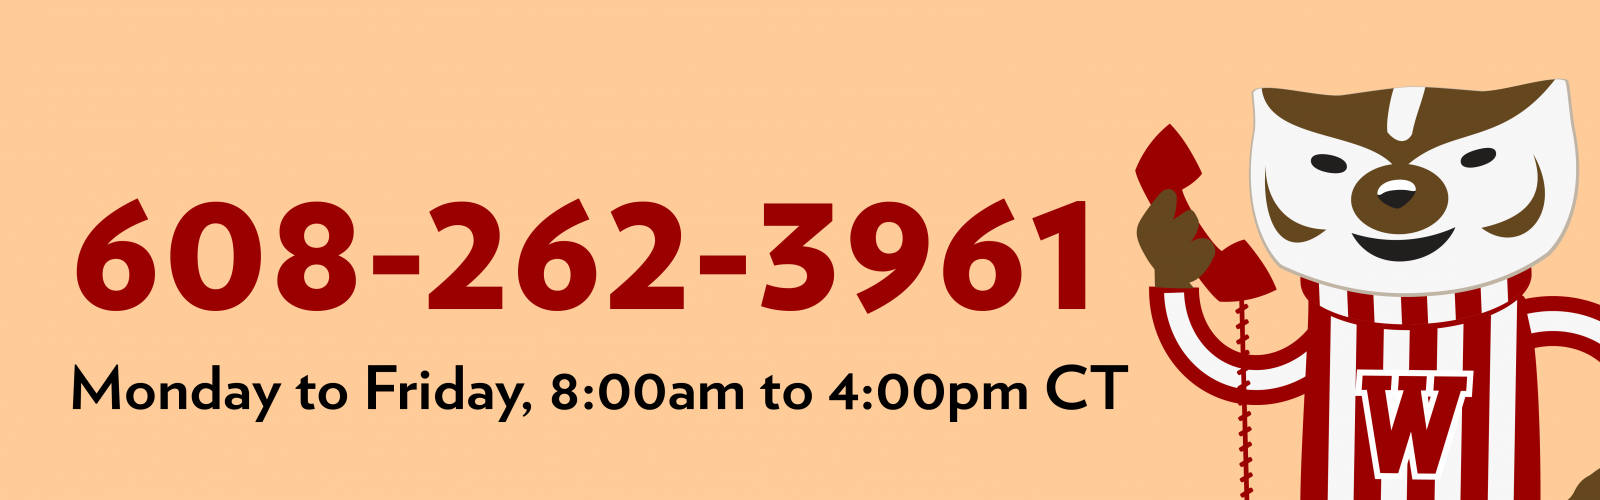 Have a question? call 608-262-3961 Monday though Friday from 10:00 a.m. to 4:00 p.m.